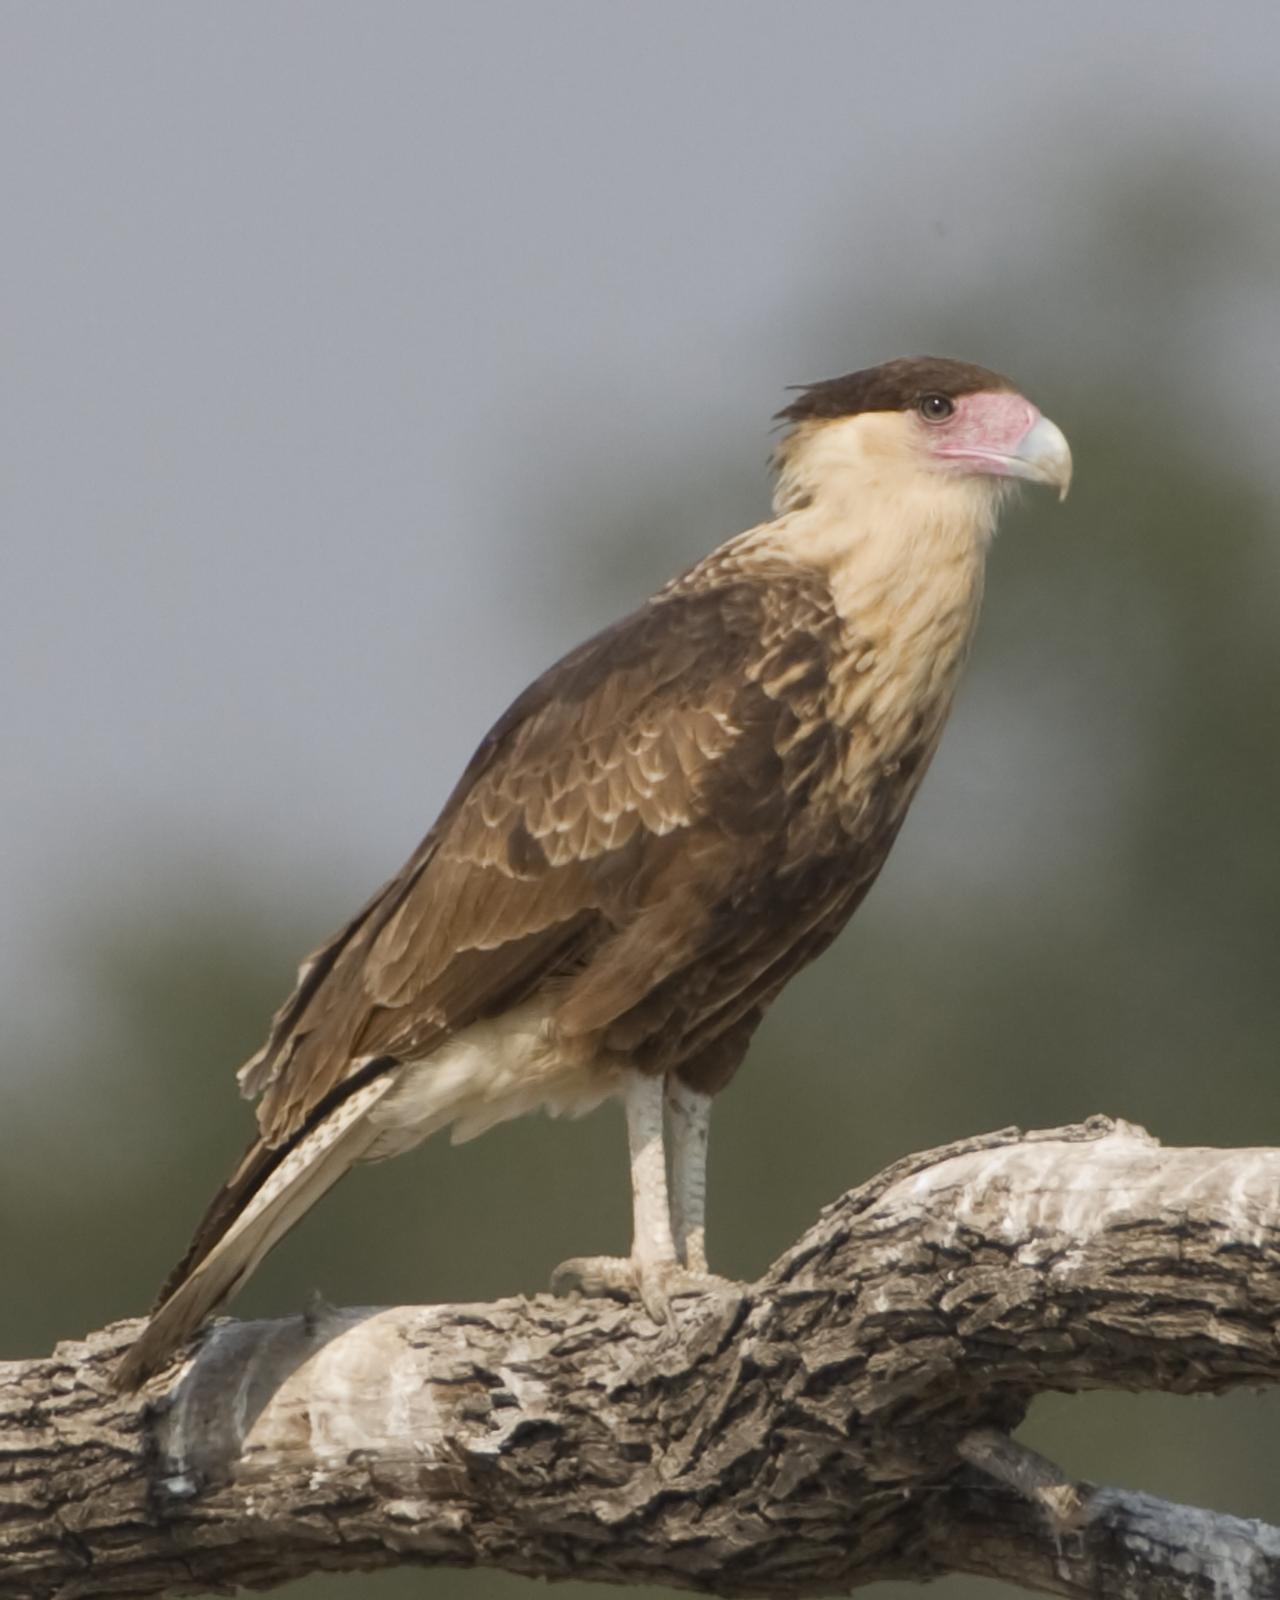 Crested Caracara Photo by Bill Adams